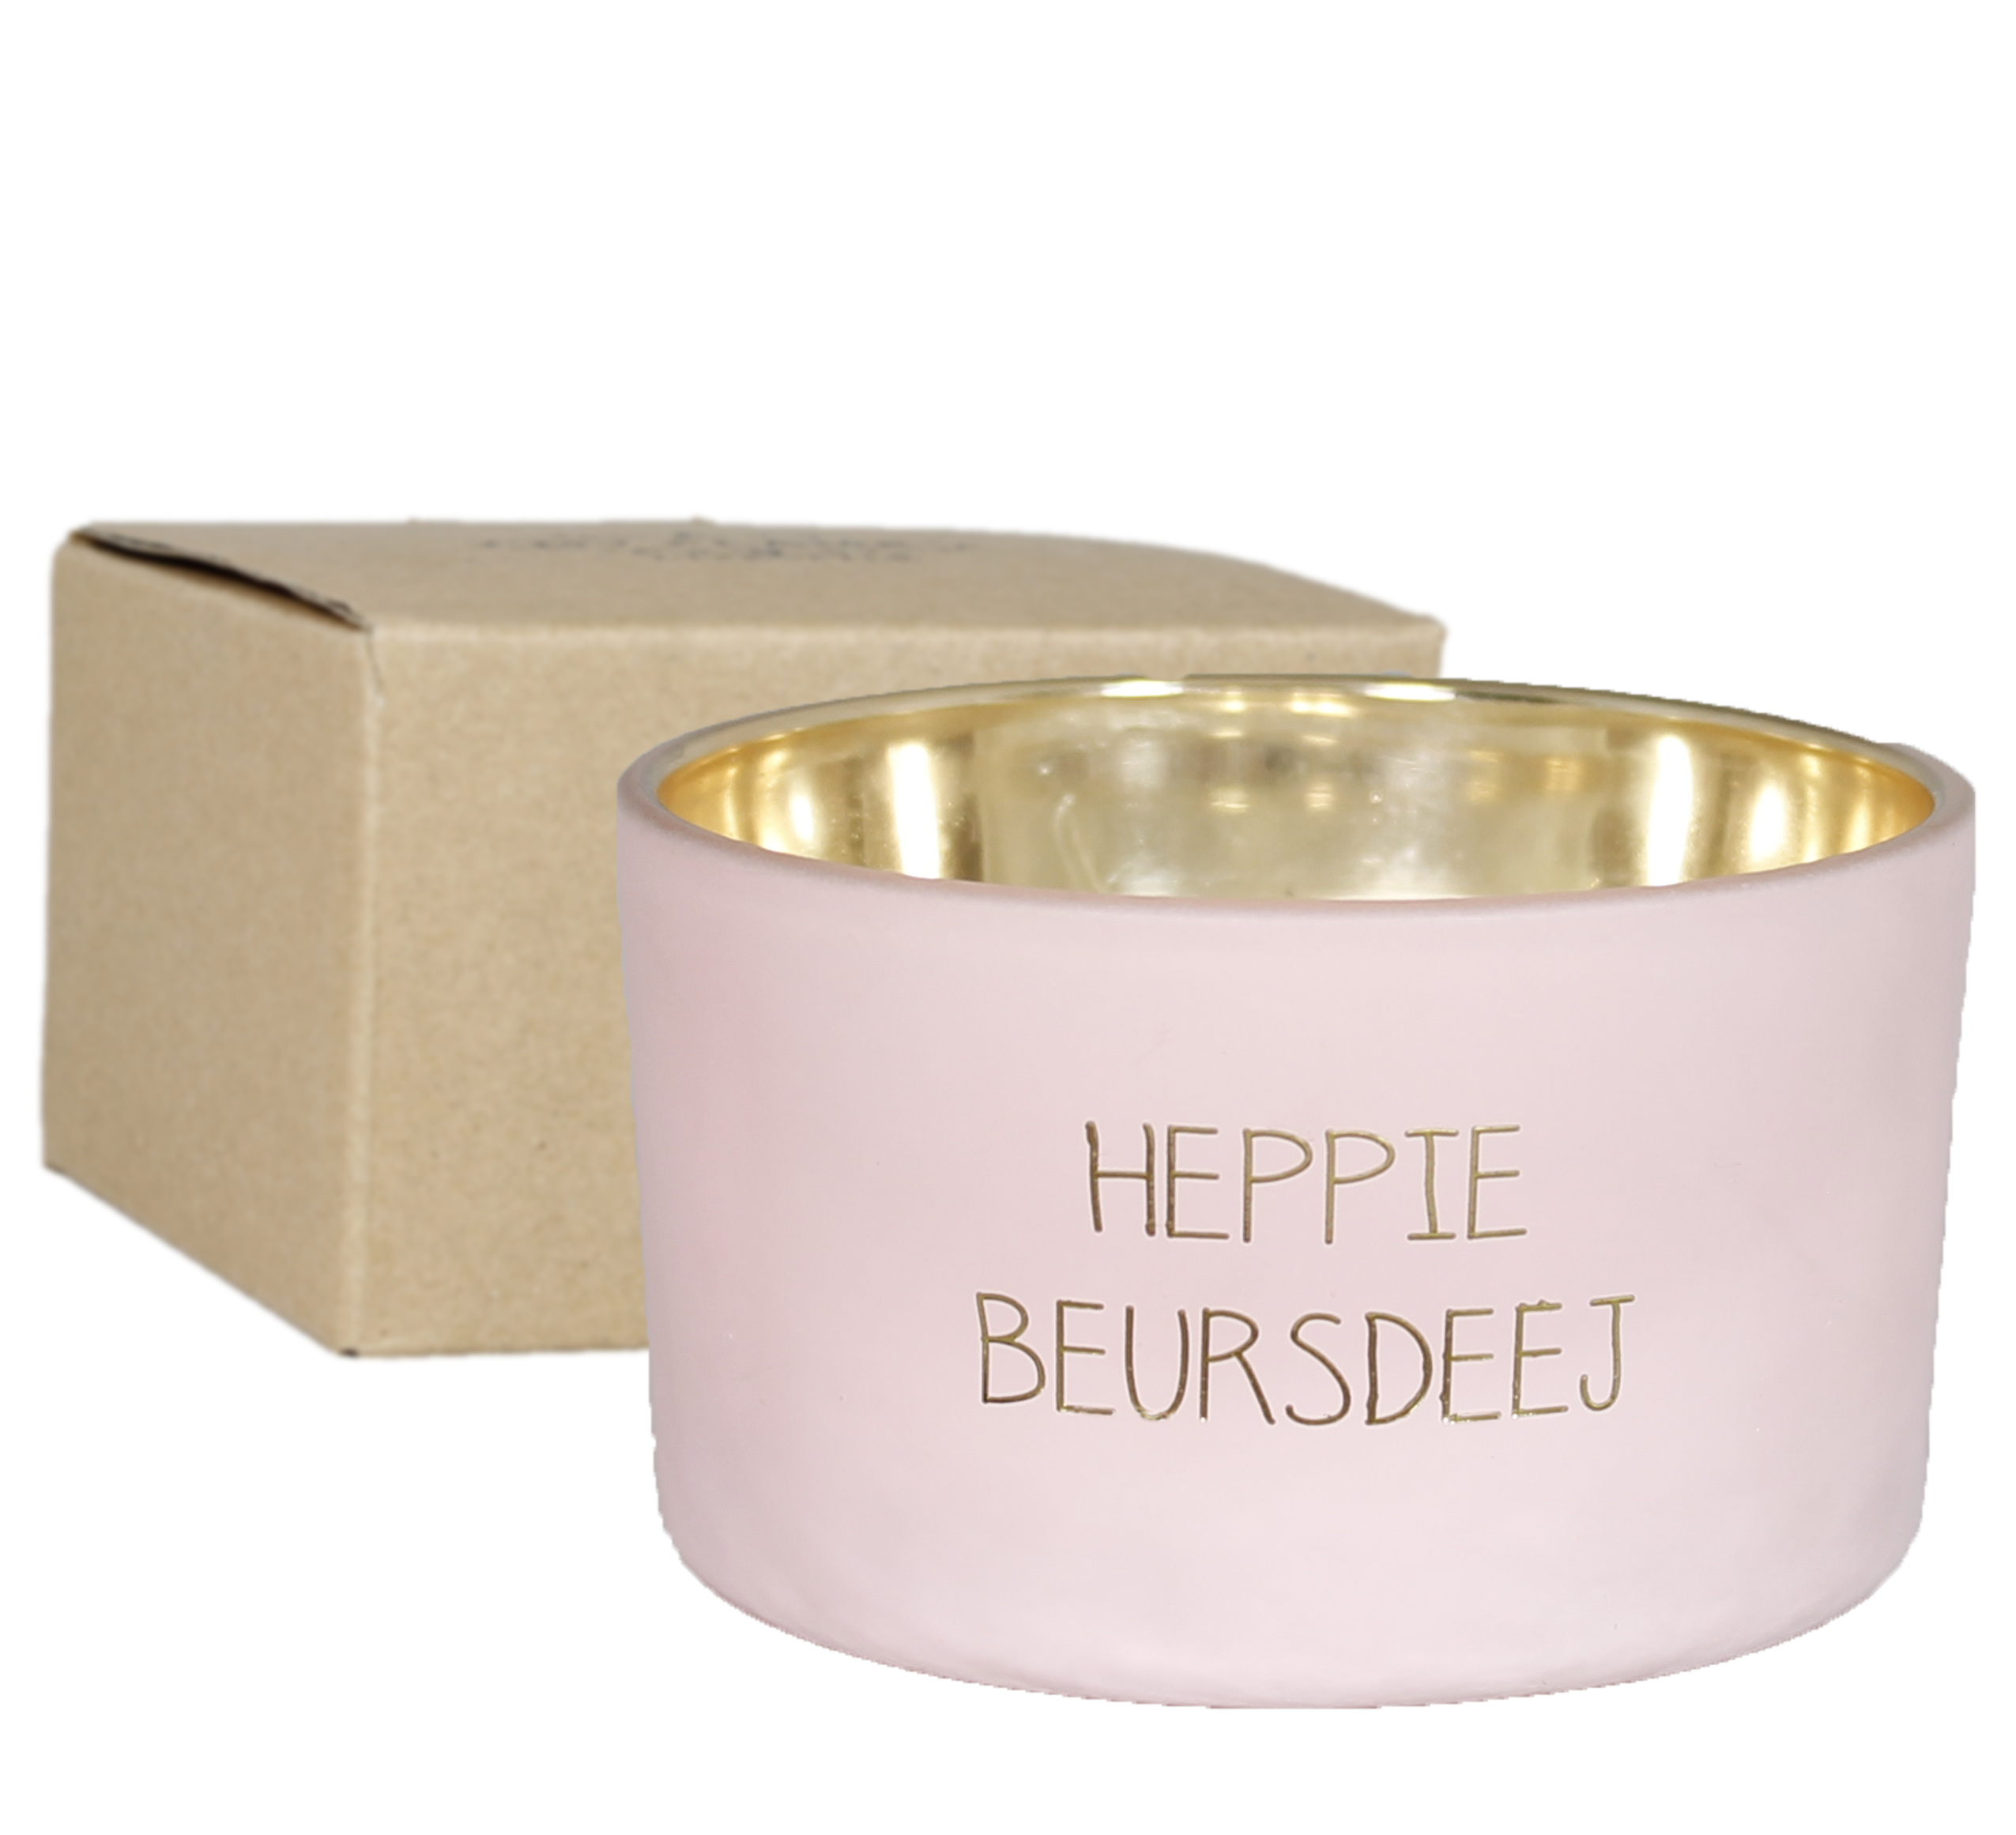 My Flame Lifestyle SOY CANDLE - HEPPIE BEURSDEEJ - SCENT: GREEN TEA TIME